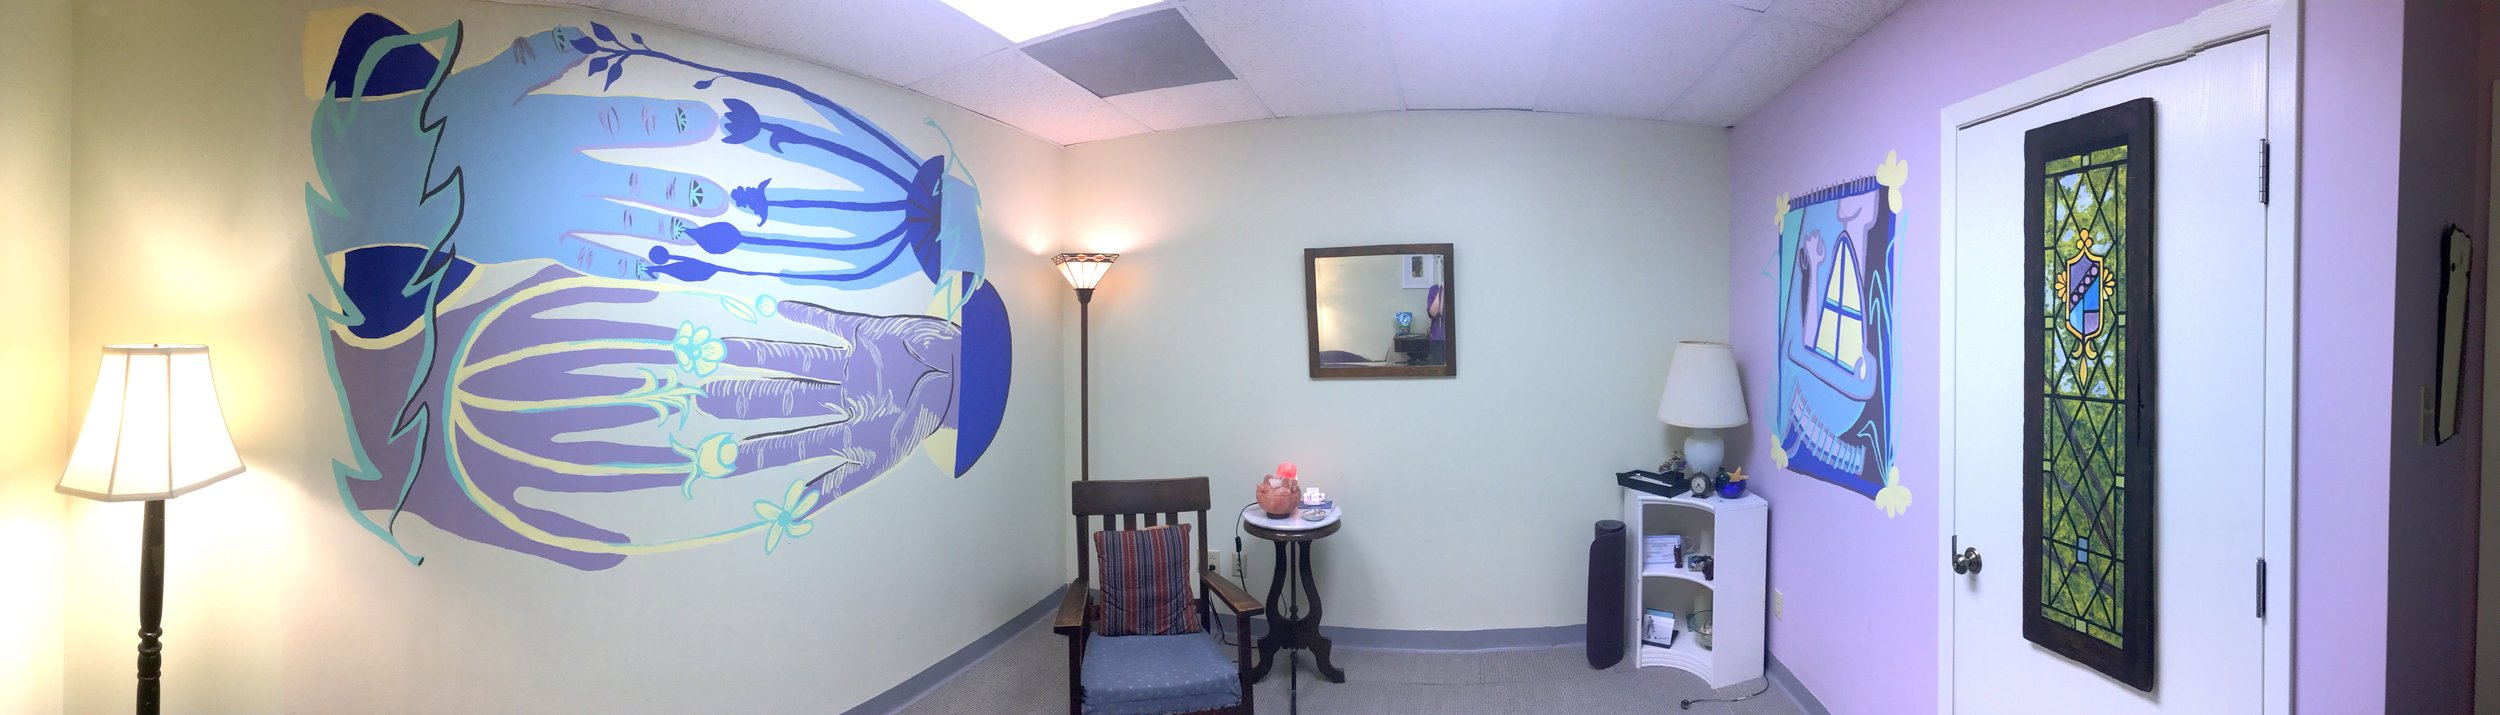 Office Space, St. Louis MO, June 2018, 11' x 9' walls